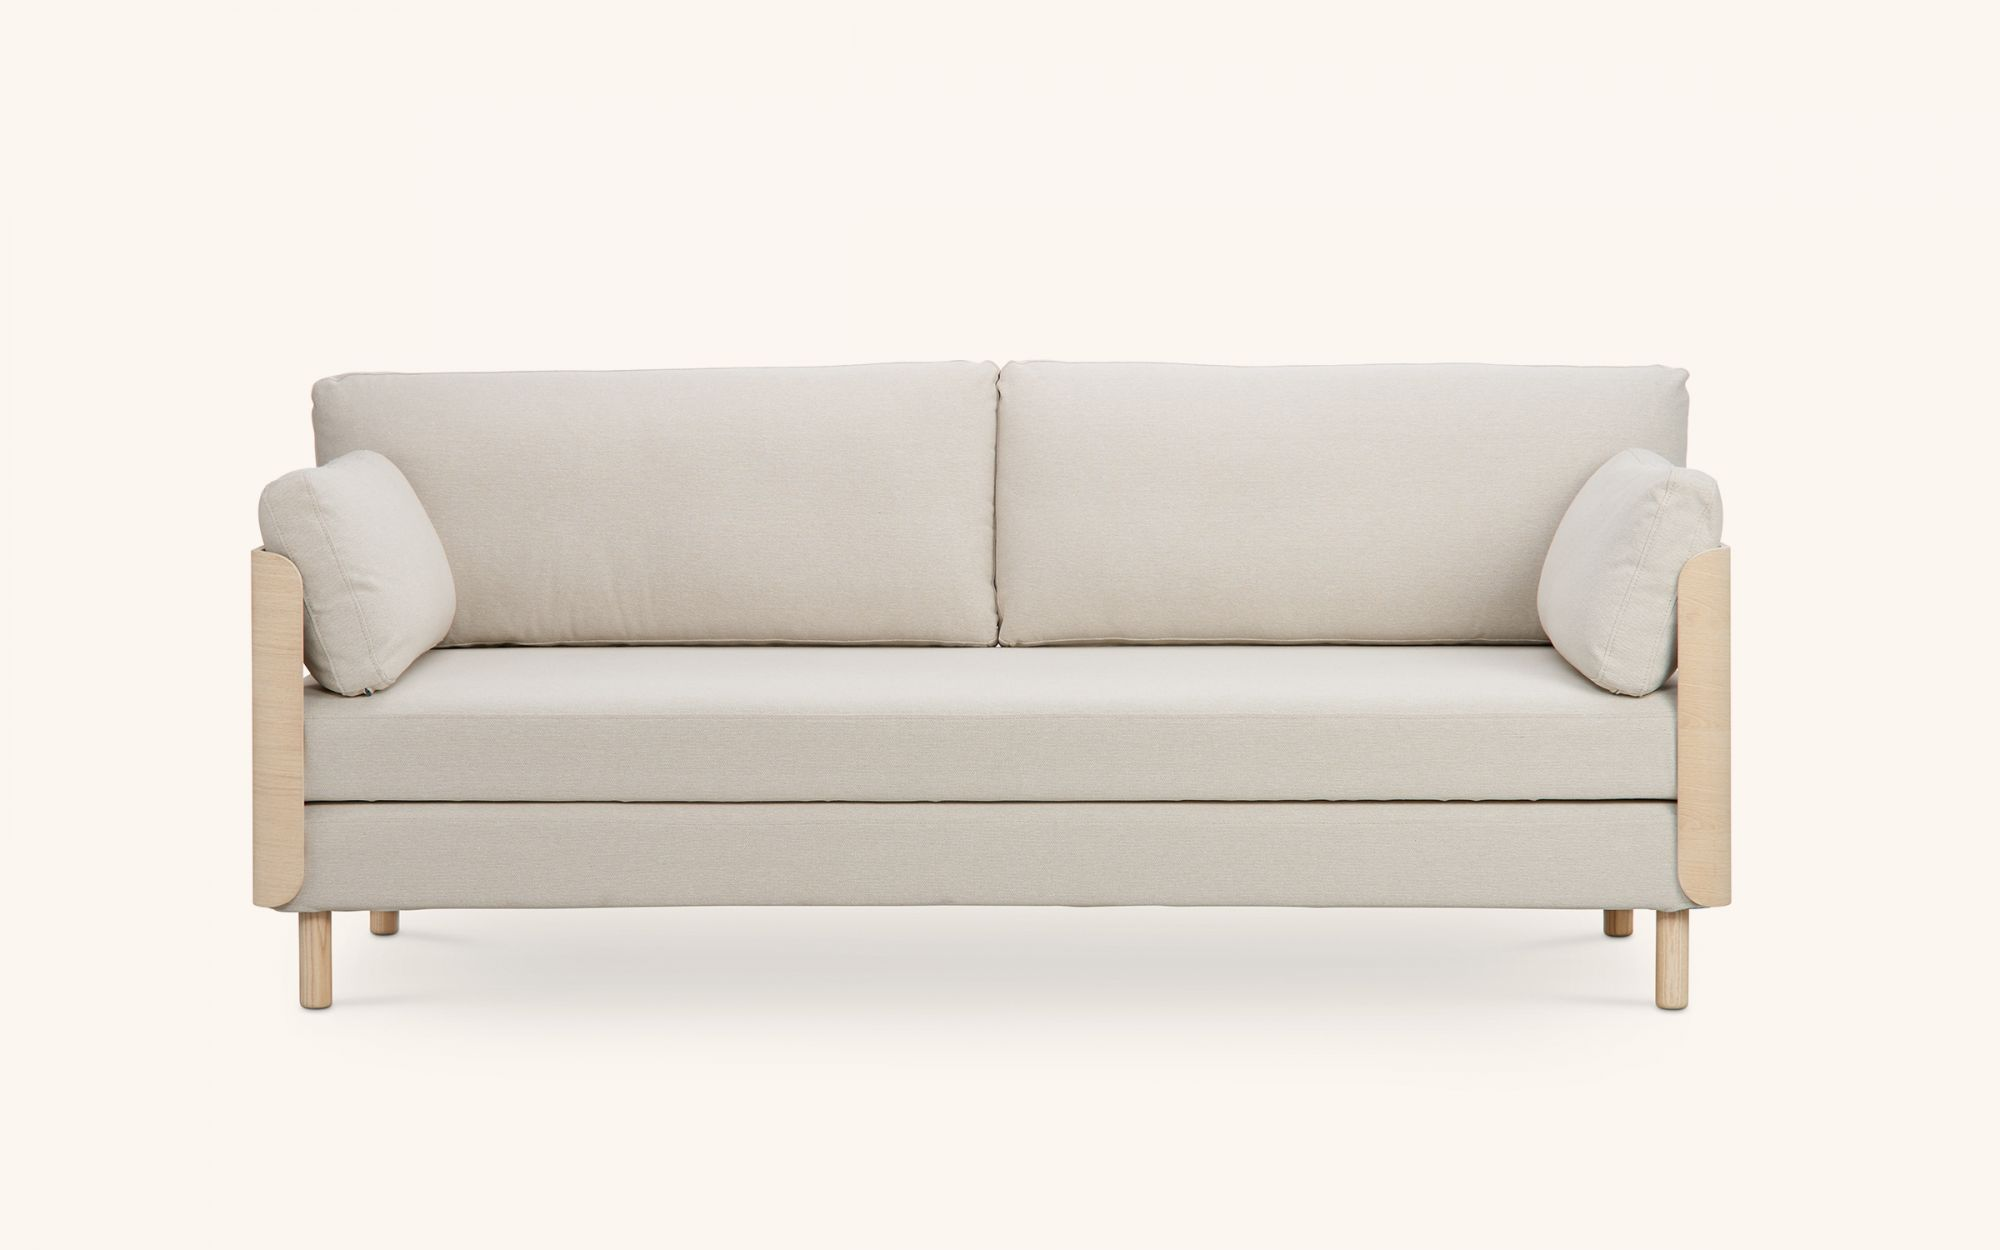 ON-sofa bed